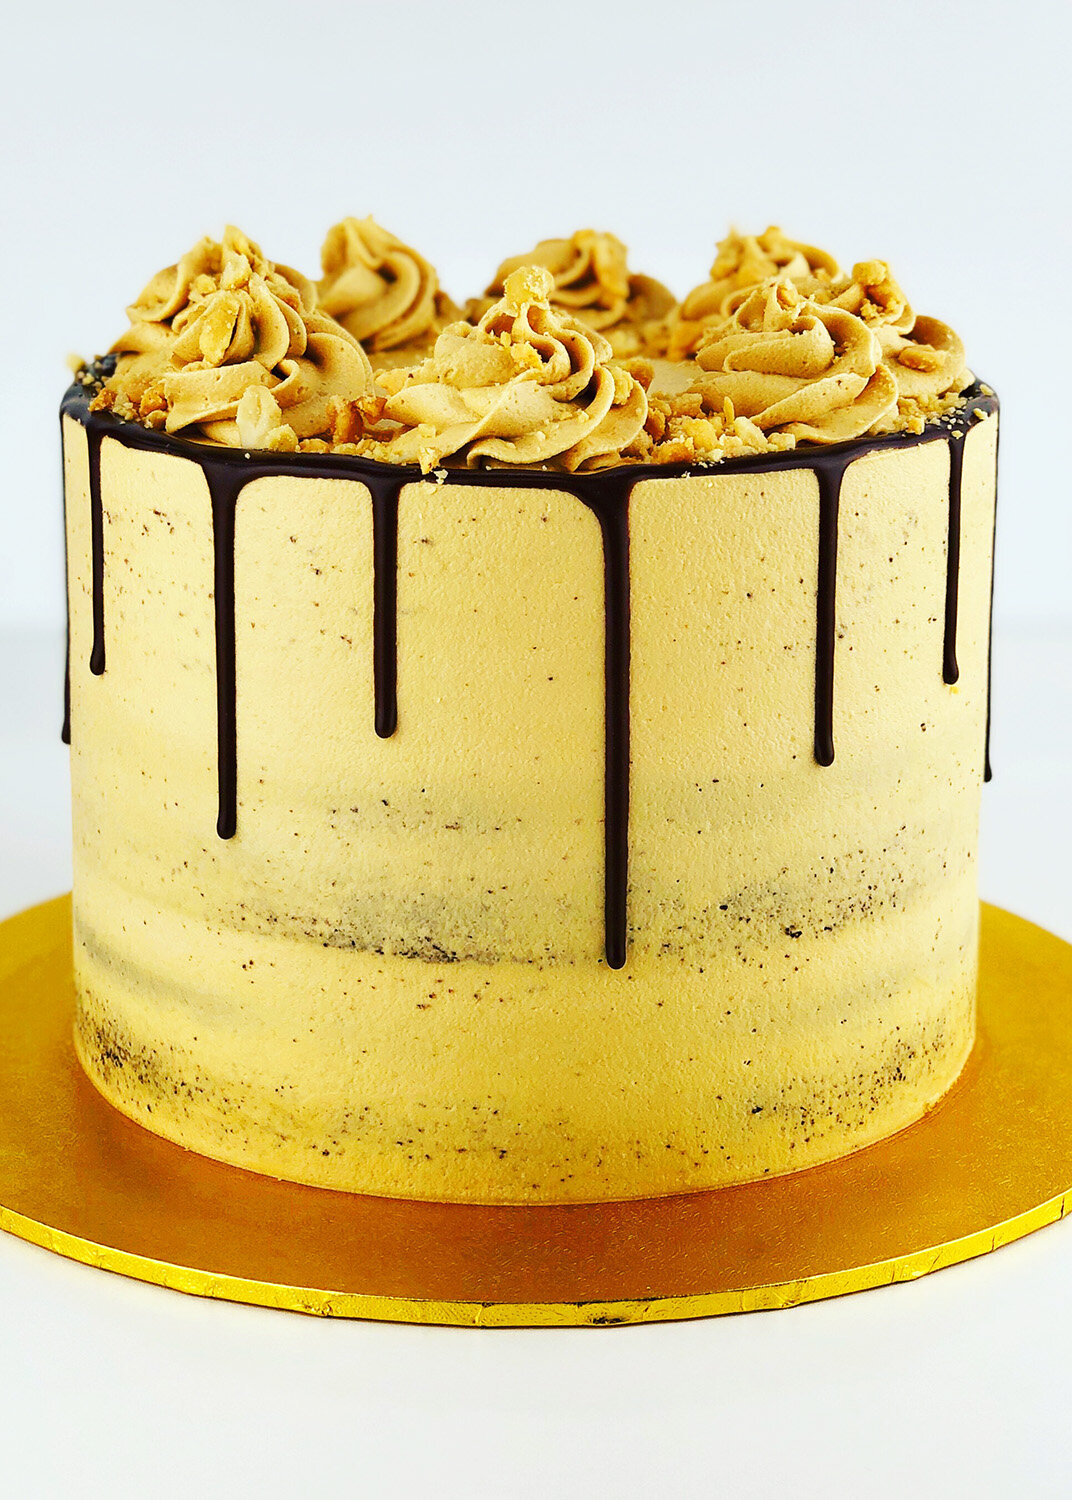 - Gluten Free Cakes - all cakes which can be made gluten free